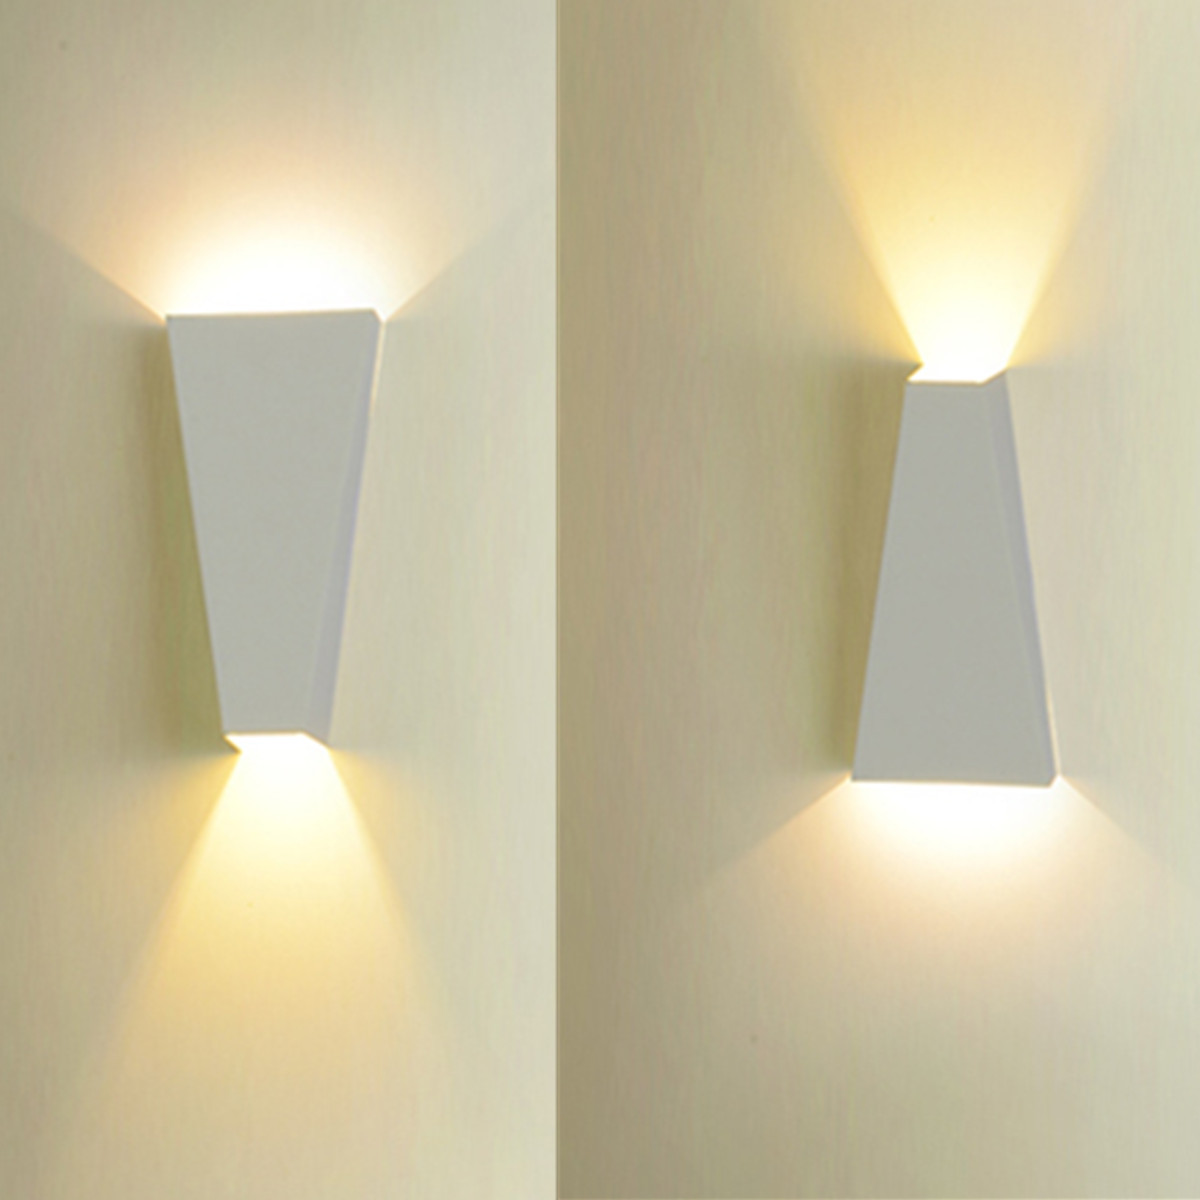 u applique lampe murale led luminaire d cor int rieur blanc chaud blanc achat vente u. Black Bedroom Furniture Sets. Home Design Ideas